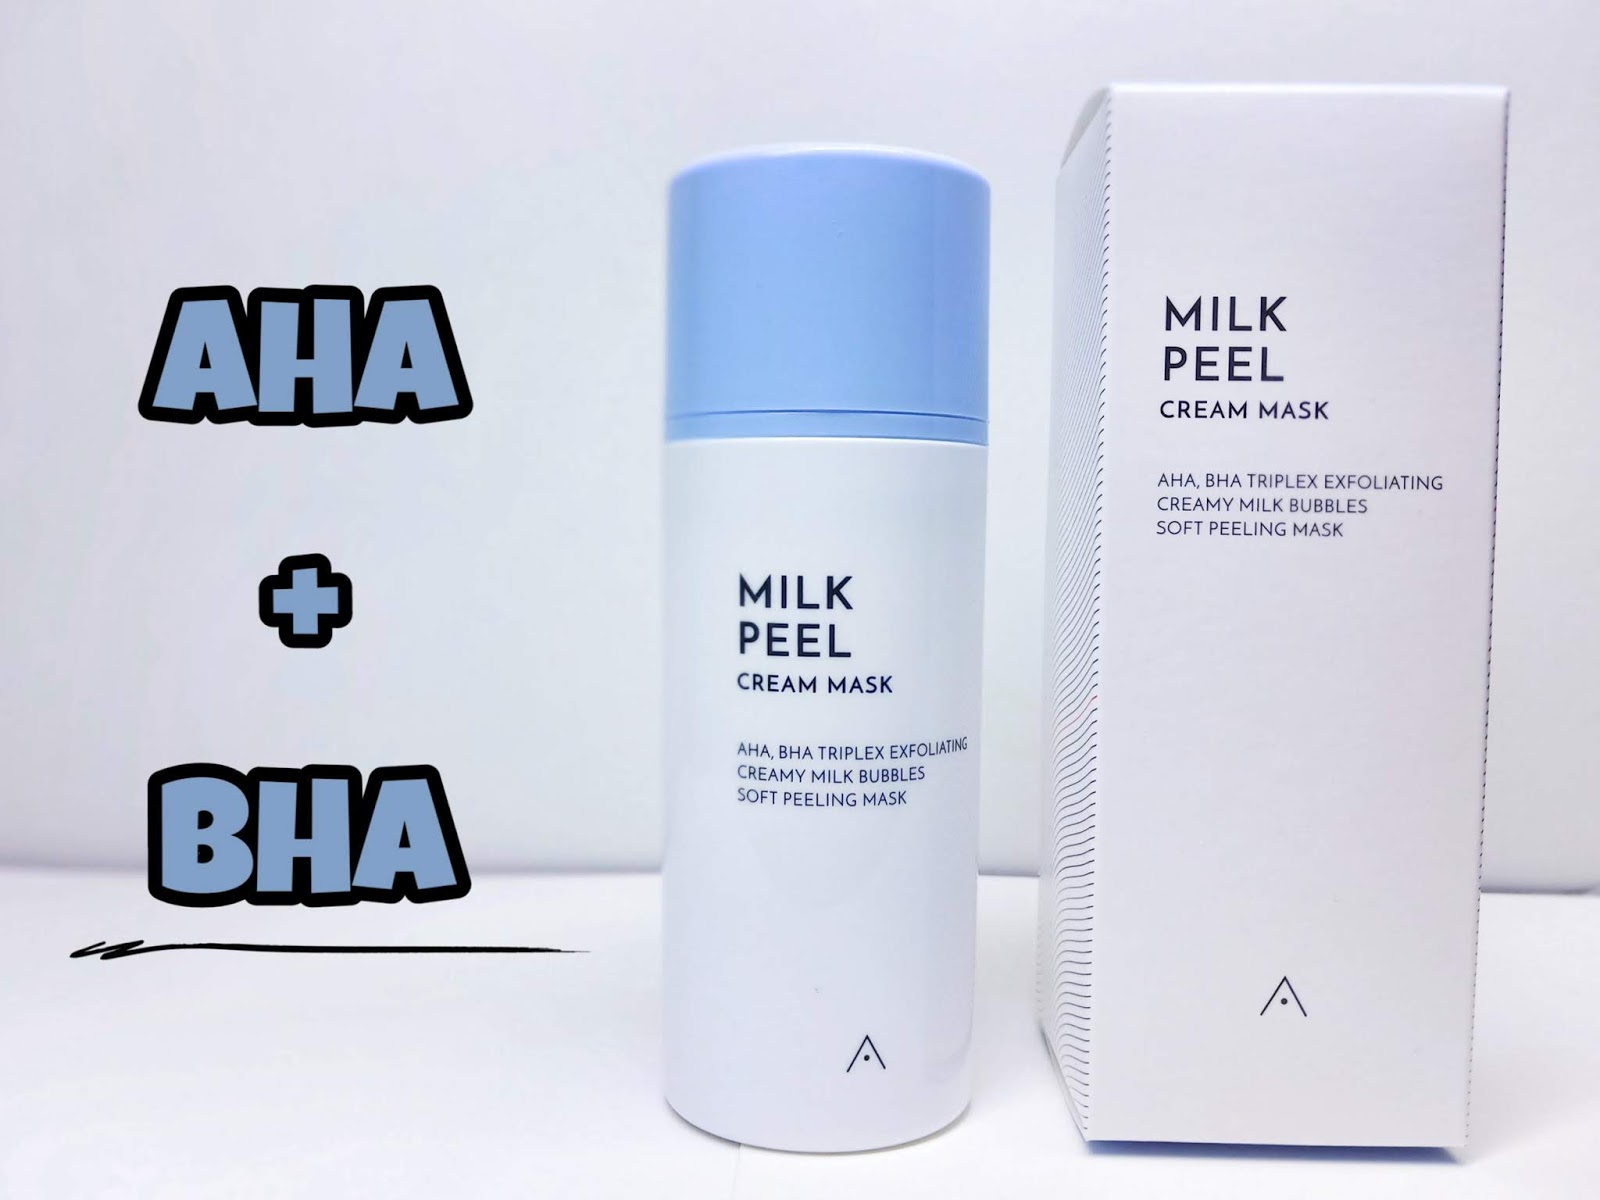 Susu Milk Peel Cream Mask Althea